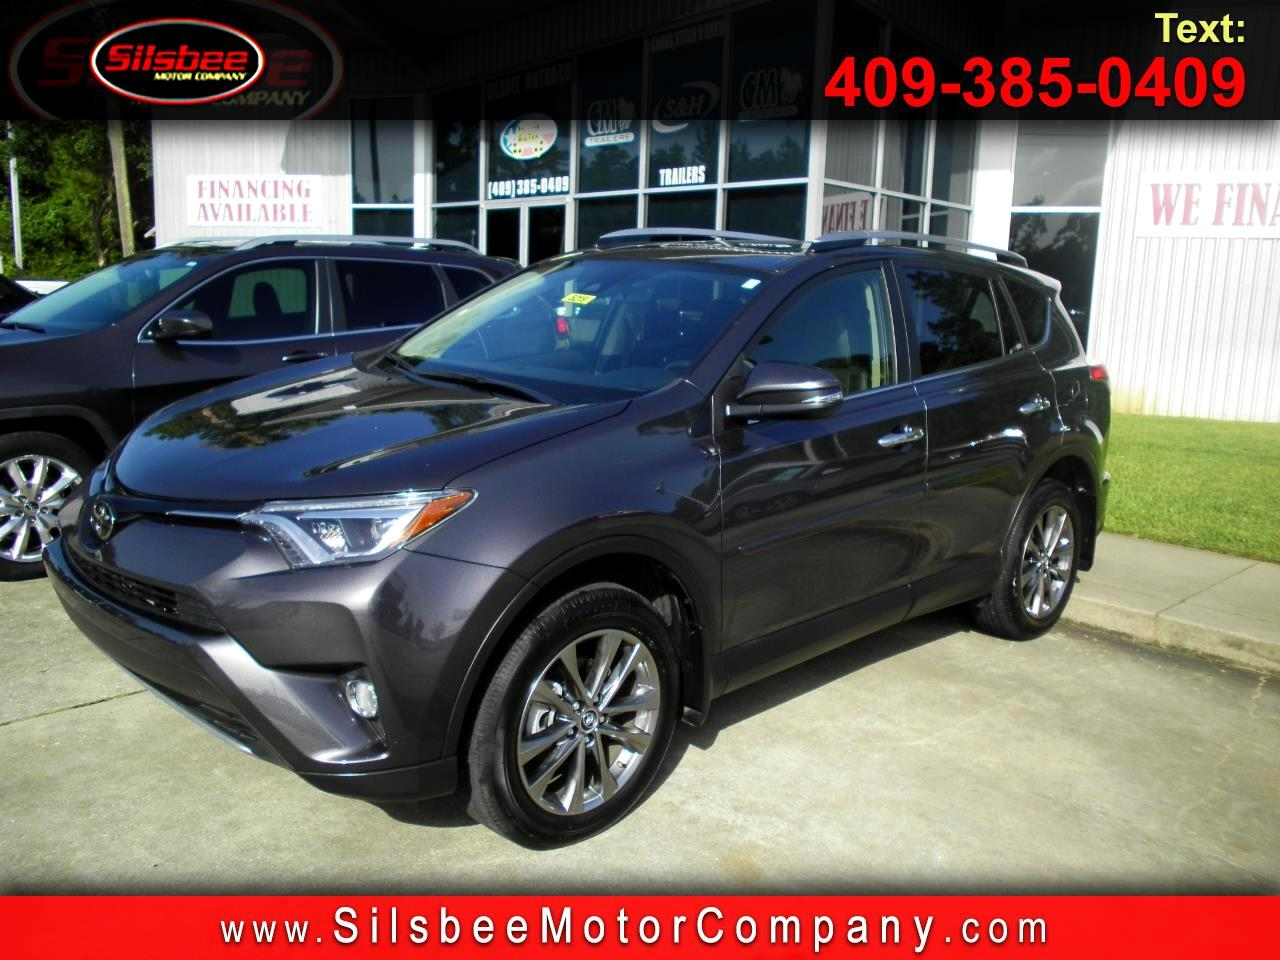 2018 Toyota RAV4 Limited FWD (Natl)